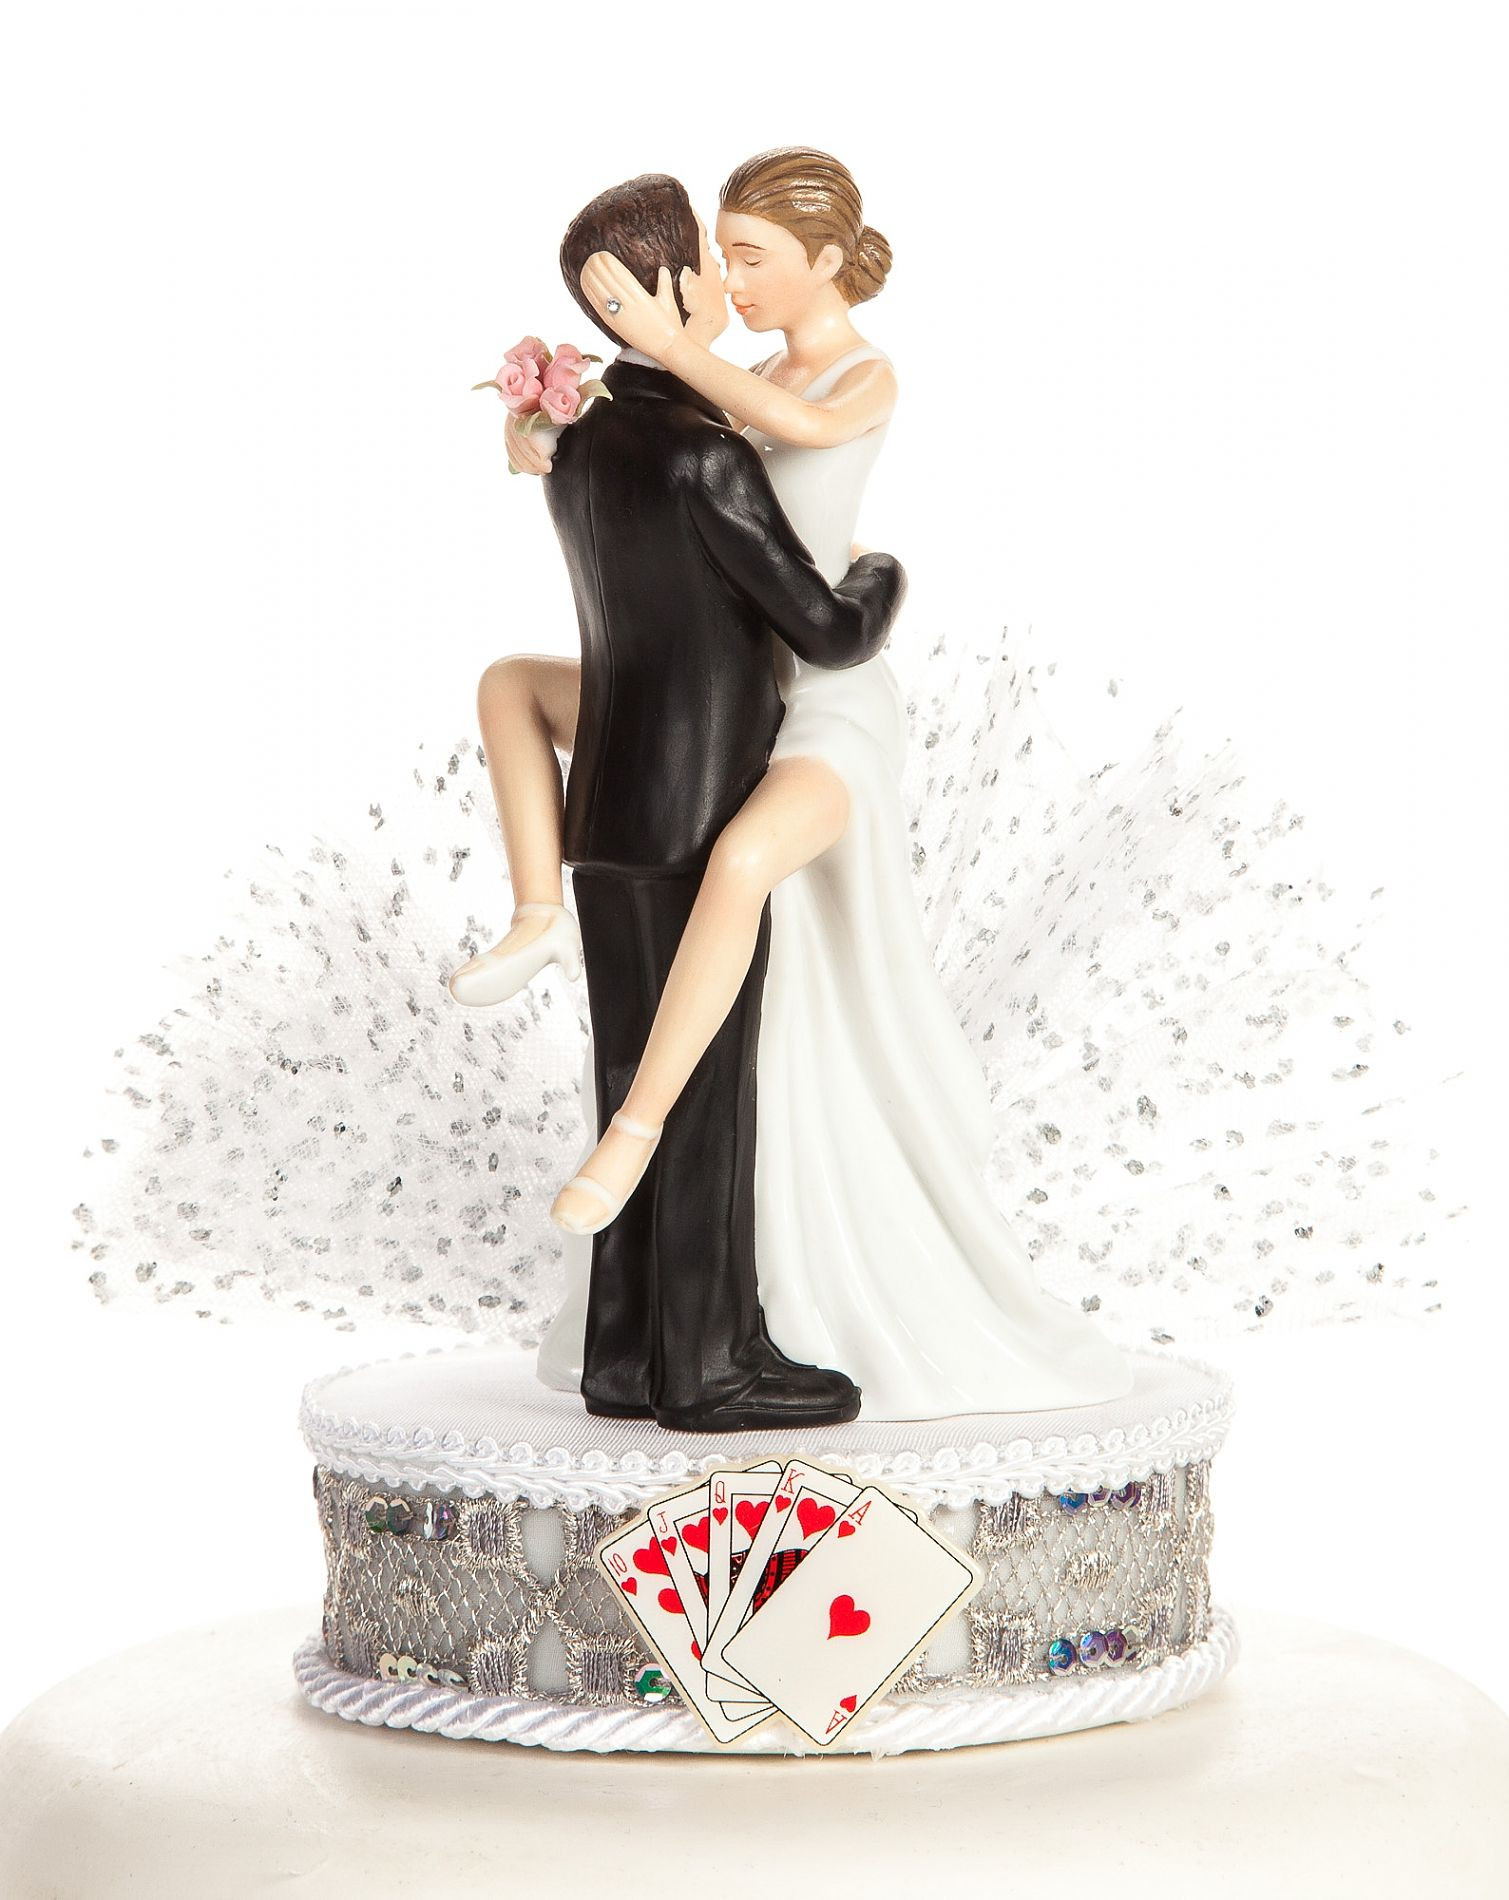 Funny Cake Toppers For Wedding Cakes  Funny y Las Vegas Wedding Cake Topper